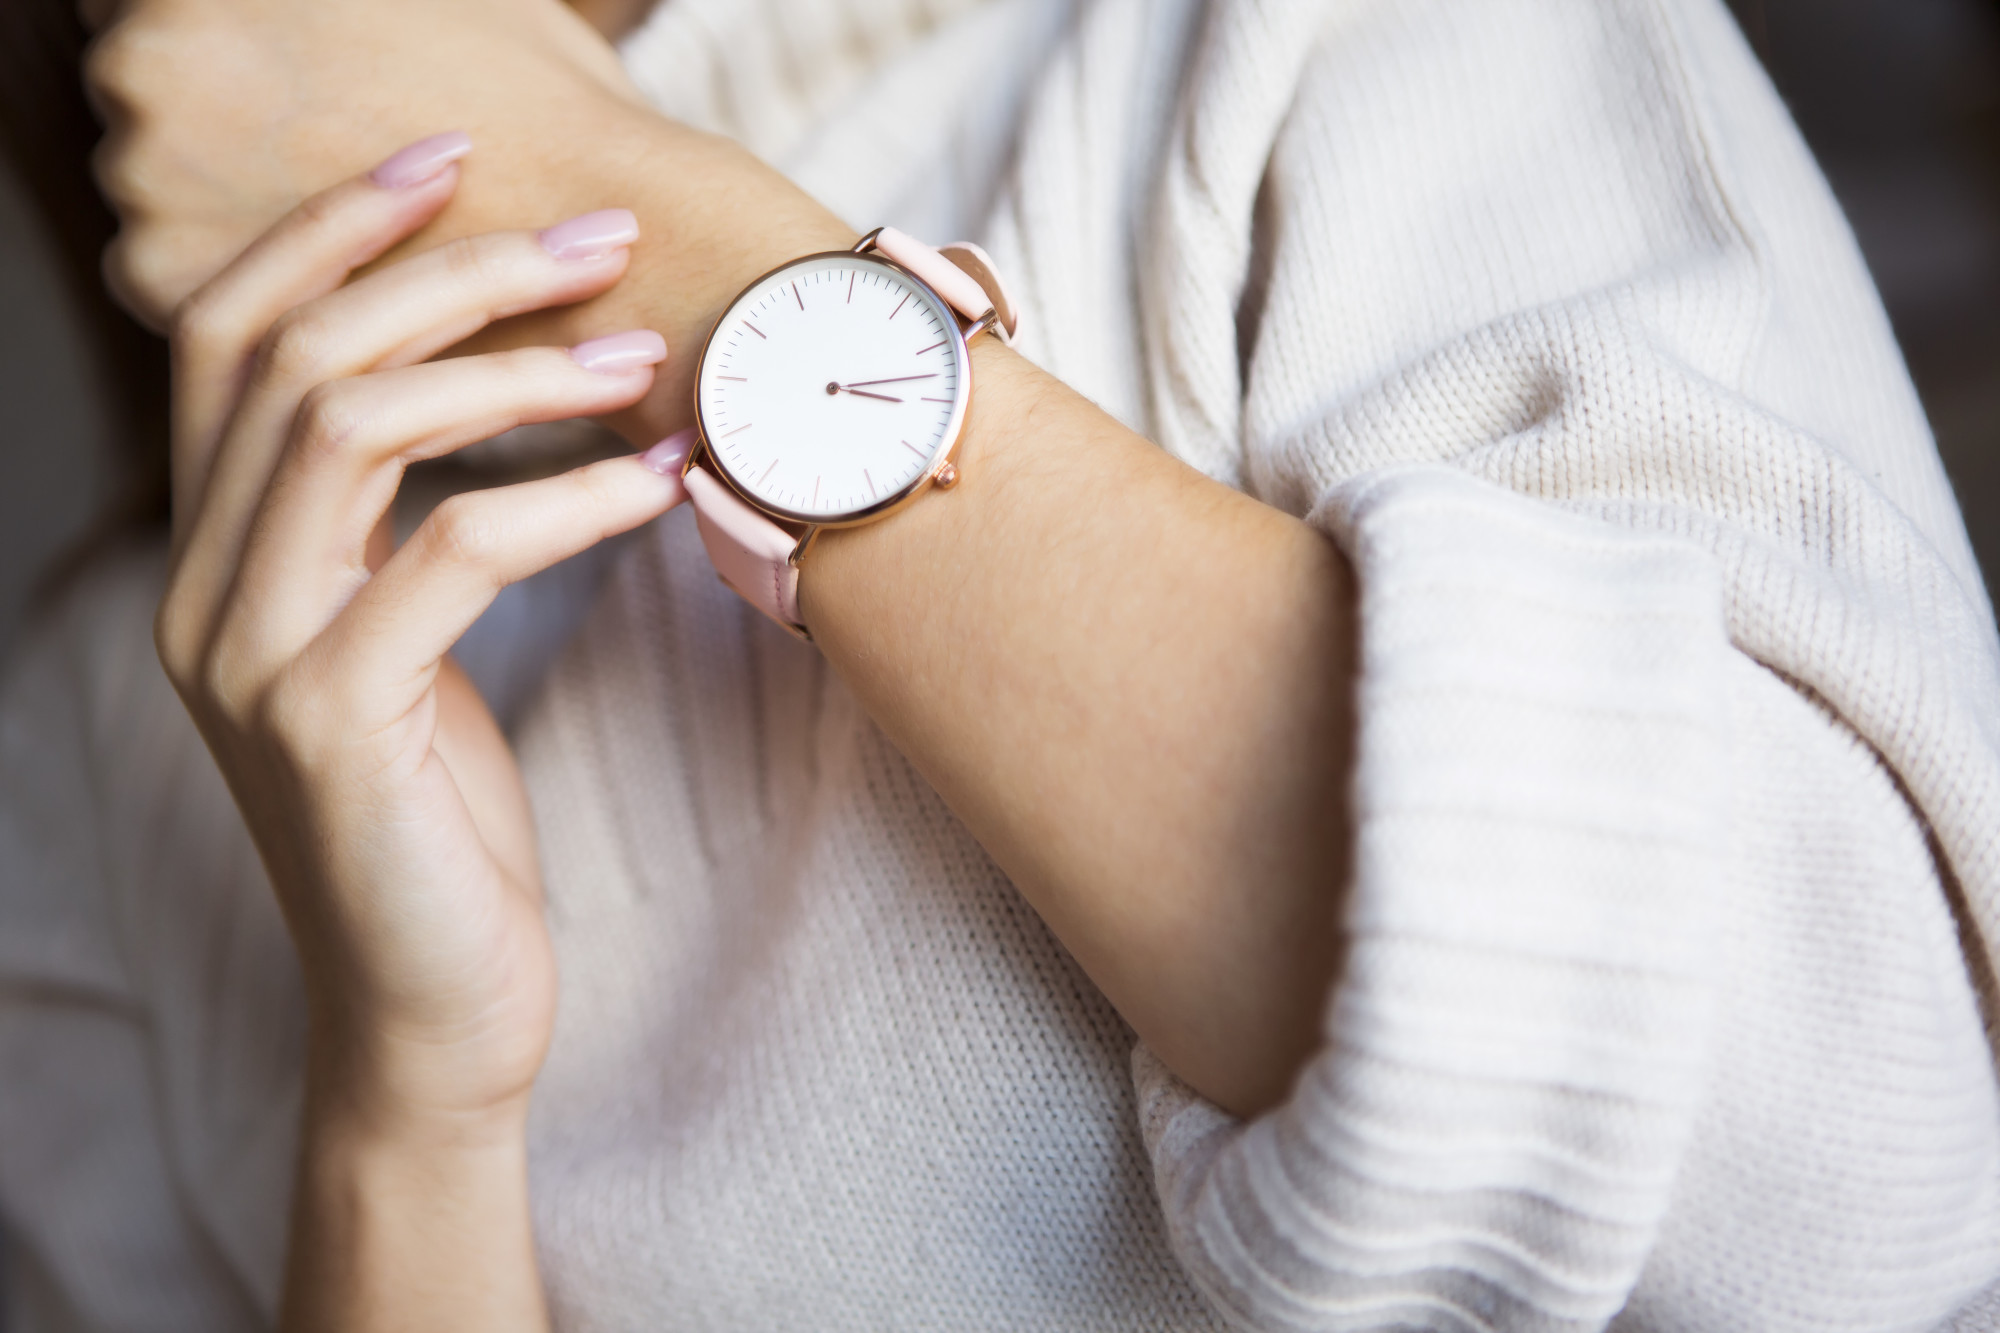 woman wearing watch